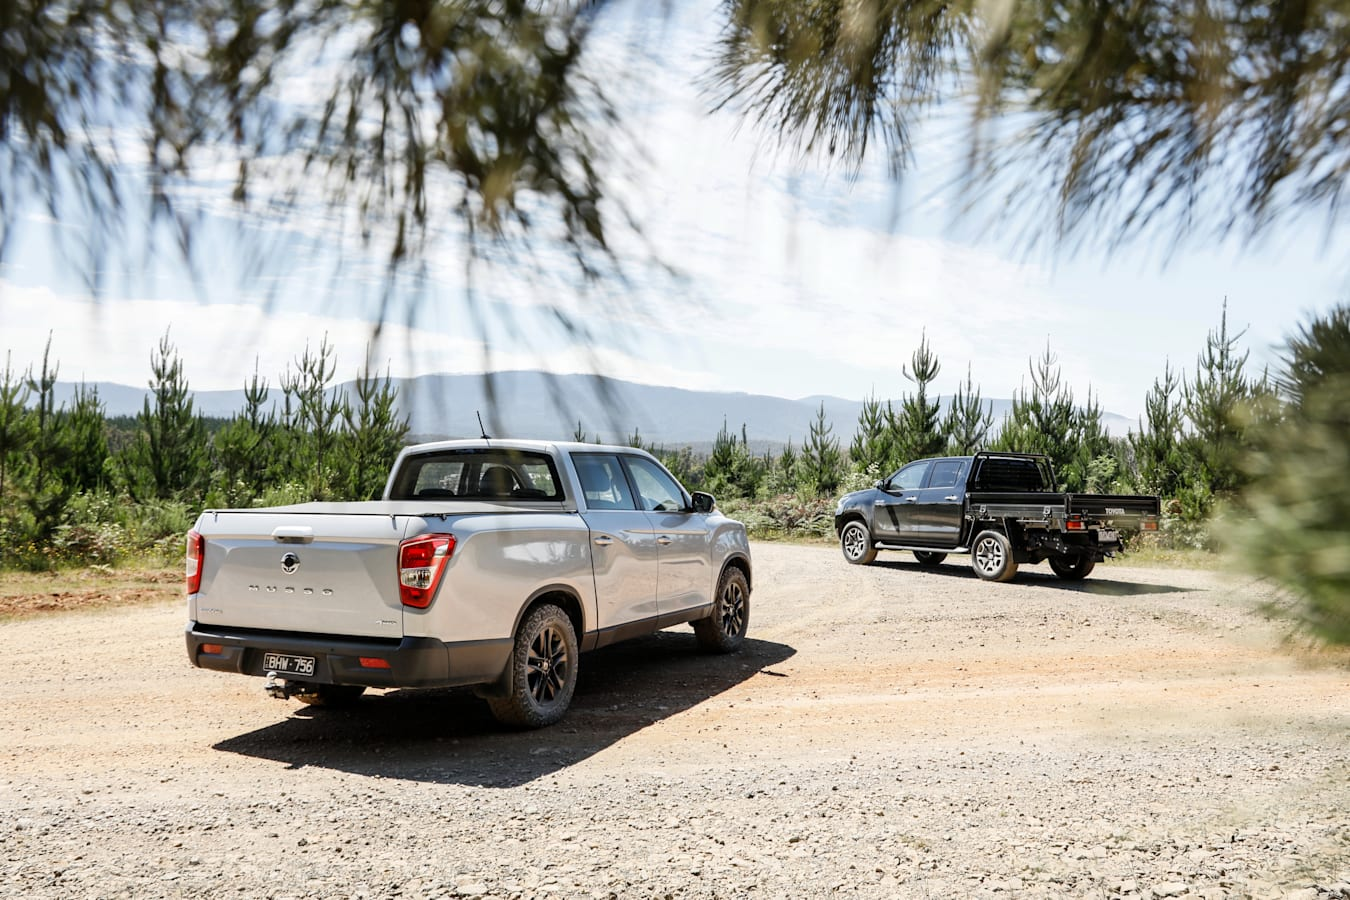 4 X 4 Australia Reviews 2021 May 2021 MUSSO HILUX 006